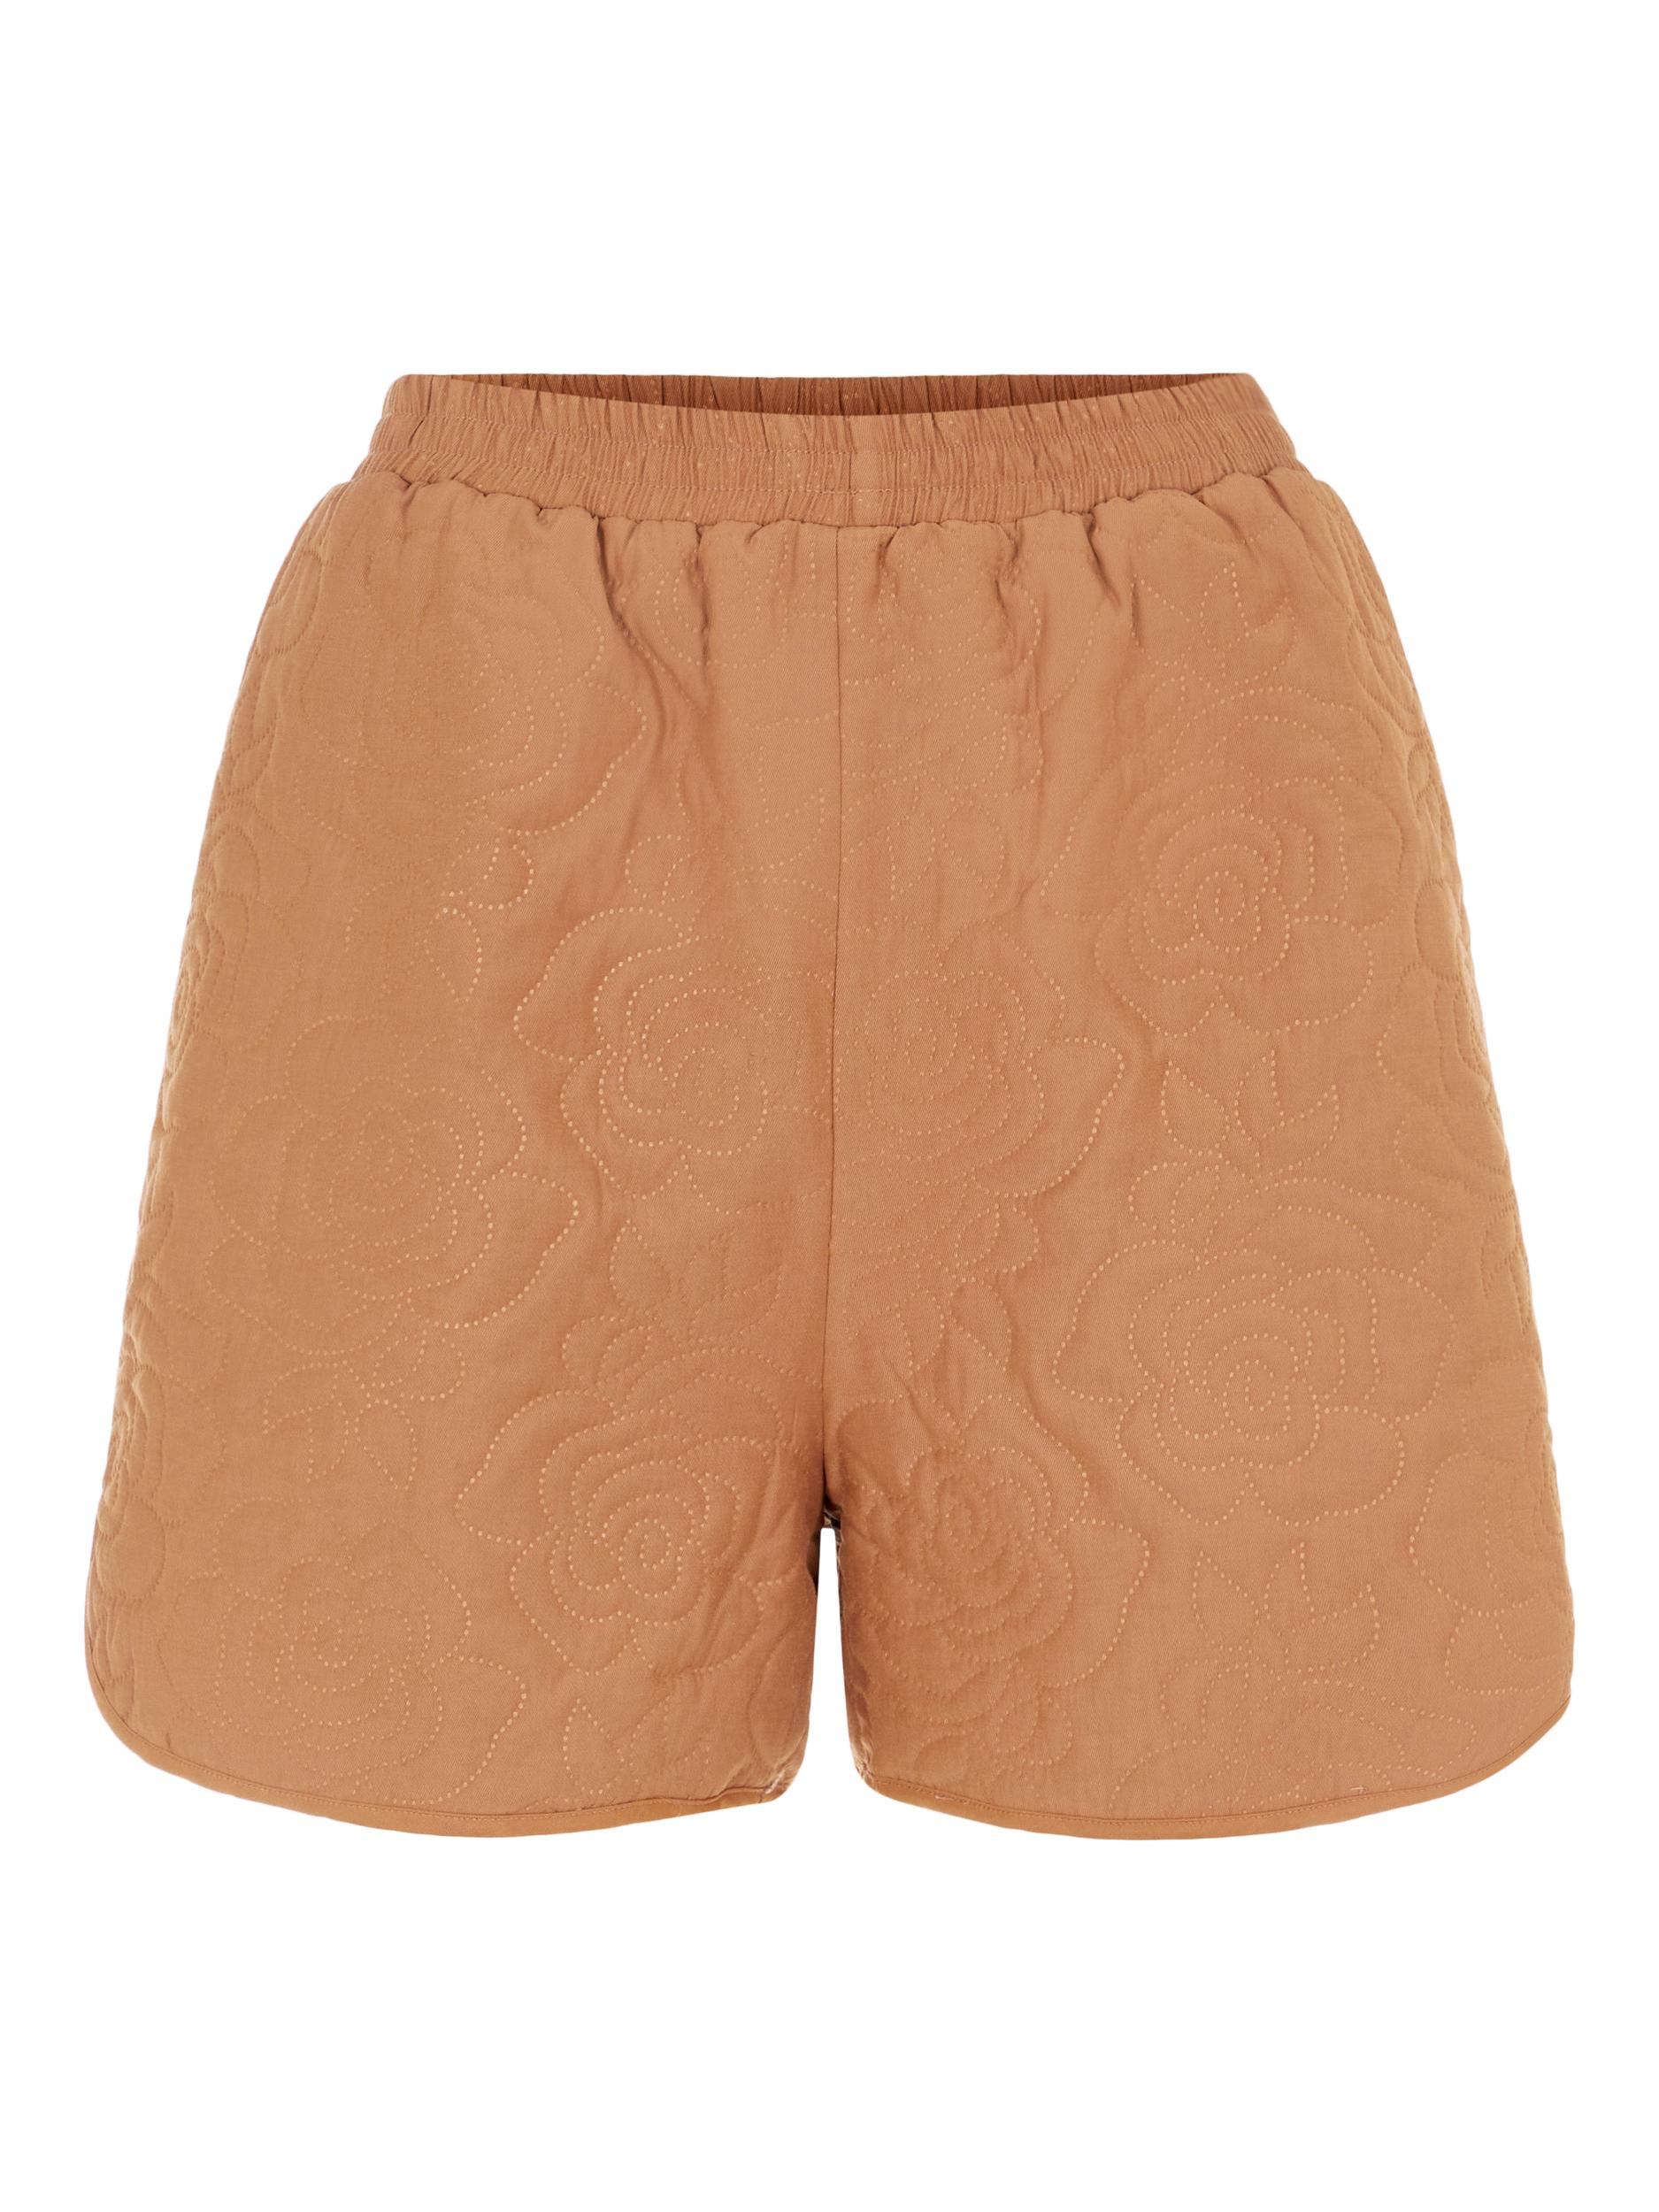 Y.A.S Sira shorts, sandstone, small